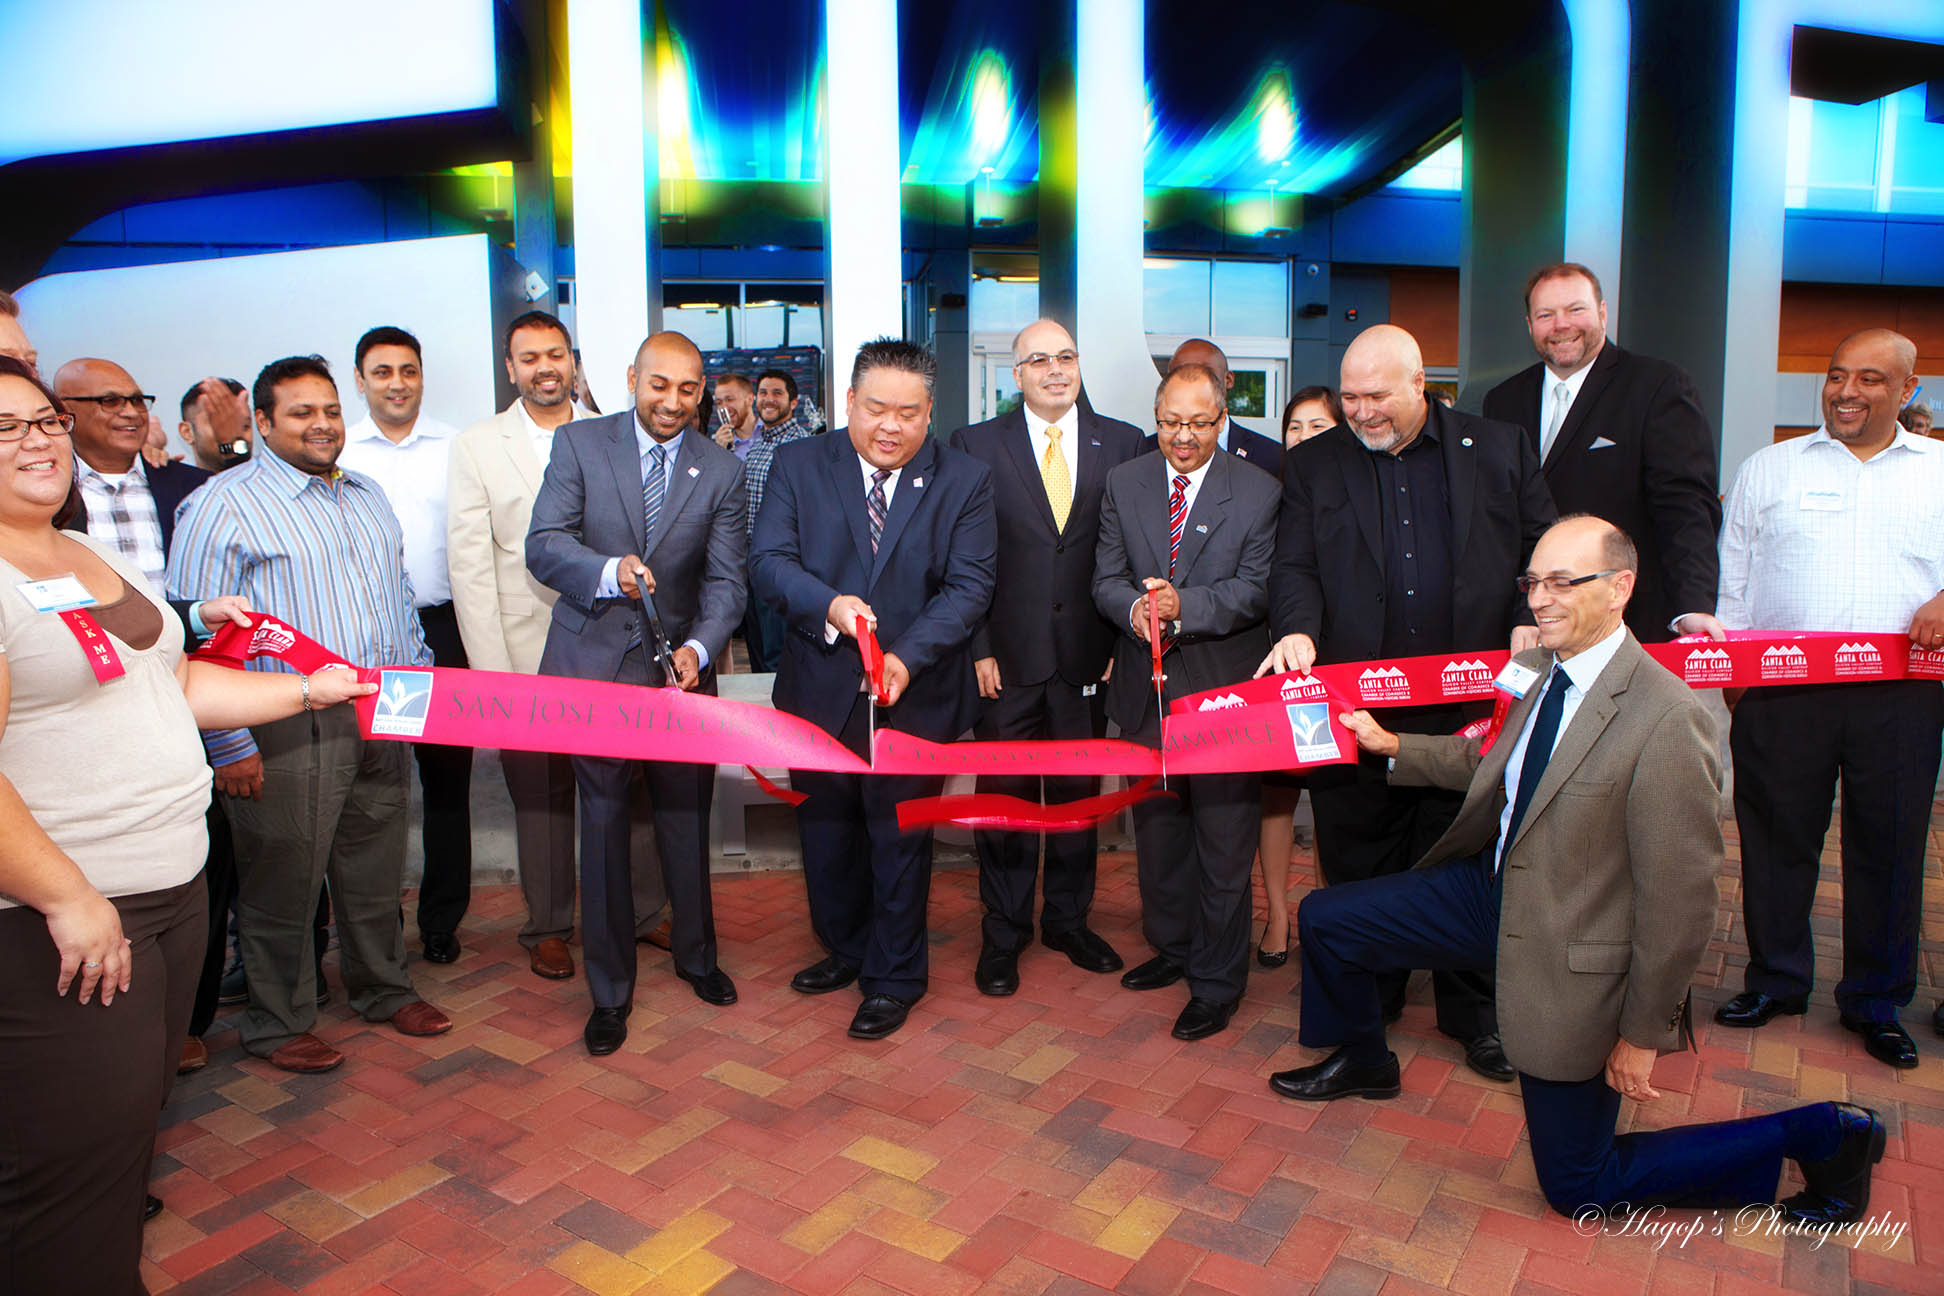 opening ceremony of the aloft hotel